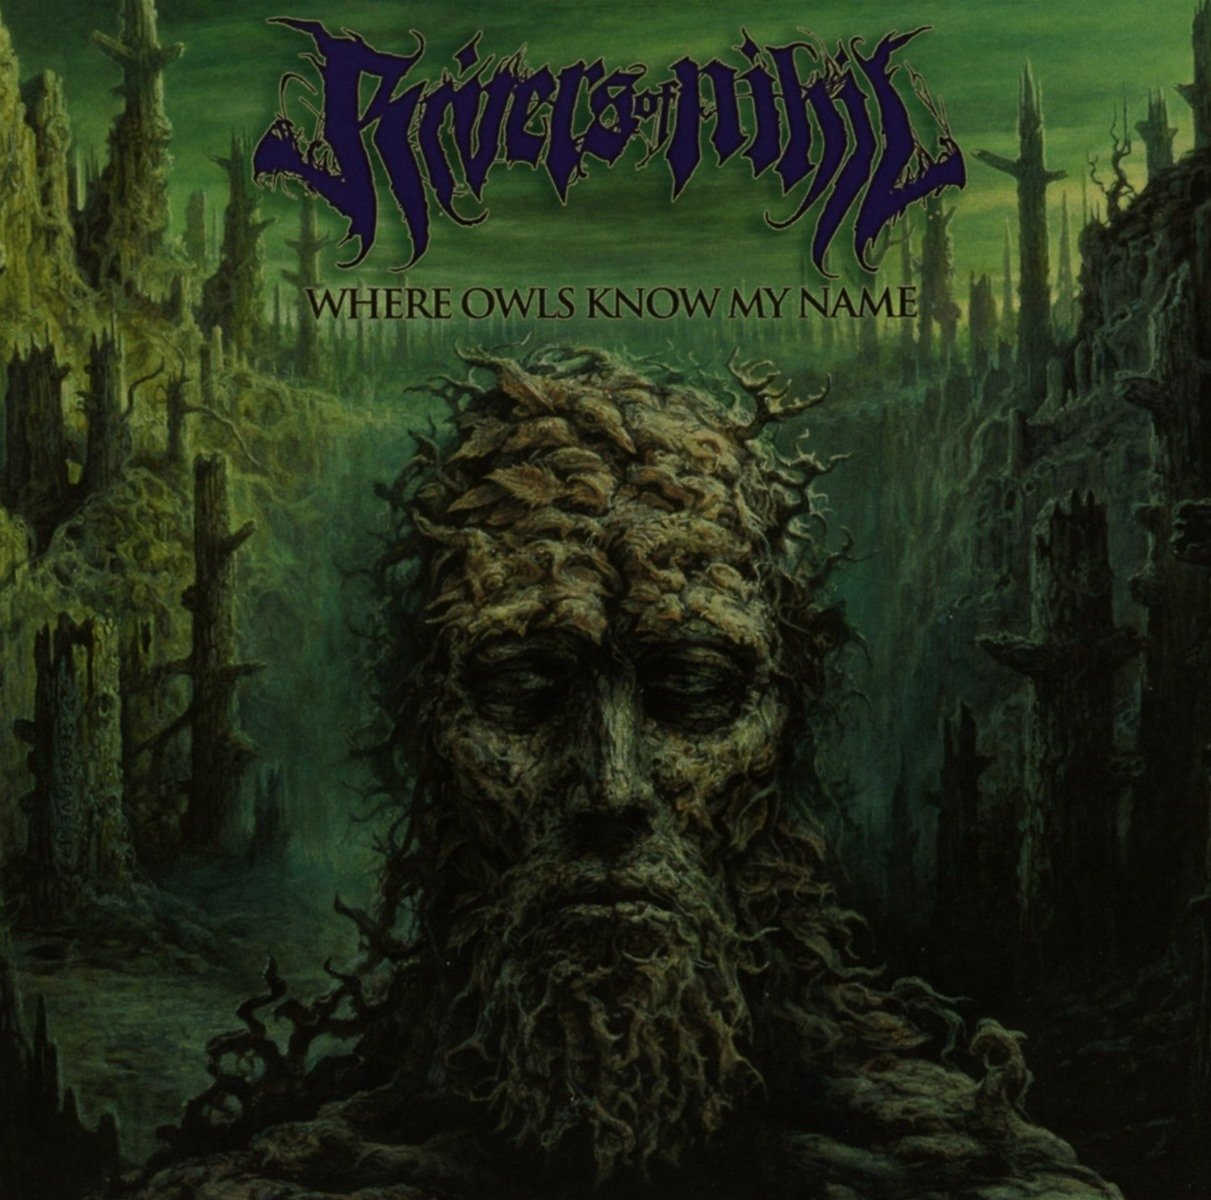 CD : Rivers of Nihil - Where Owls Know My Name (CD)